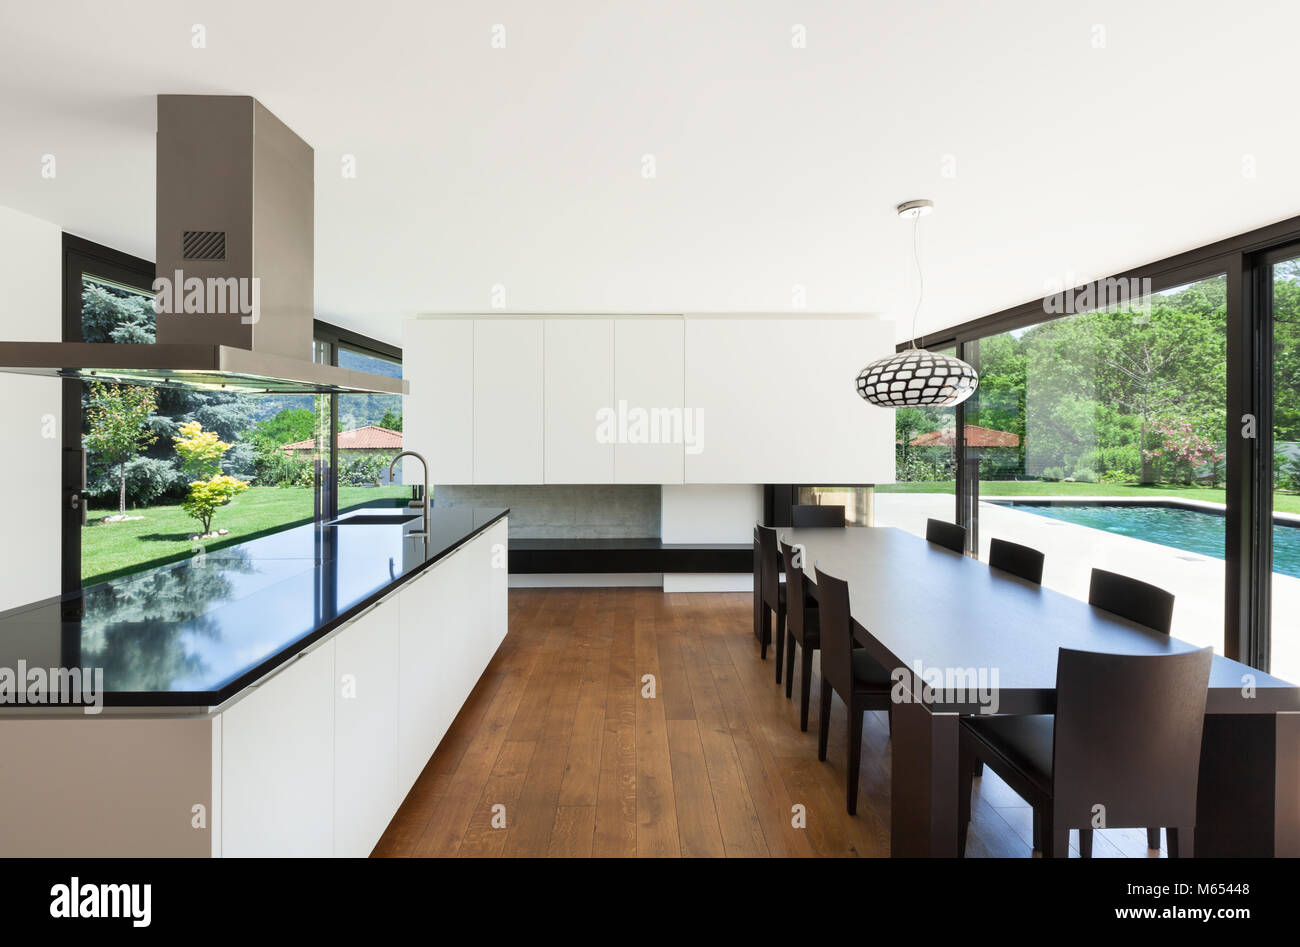 Modern villa interior beautiful dining room with kitchen island